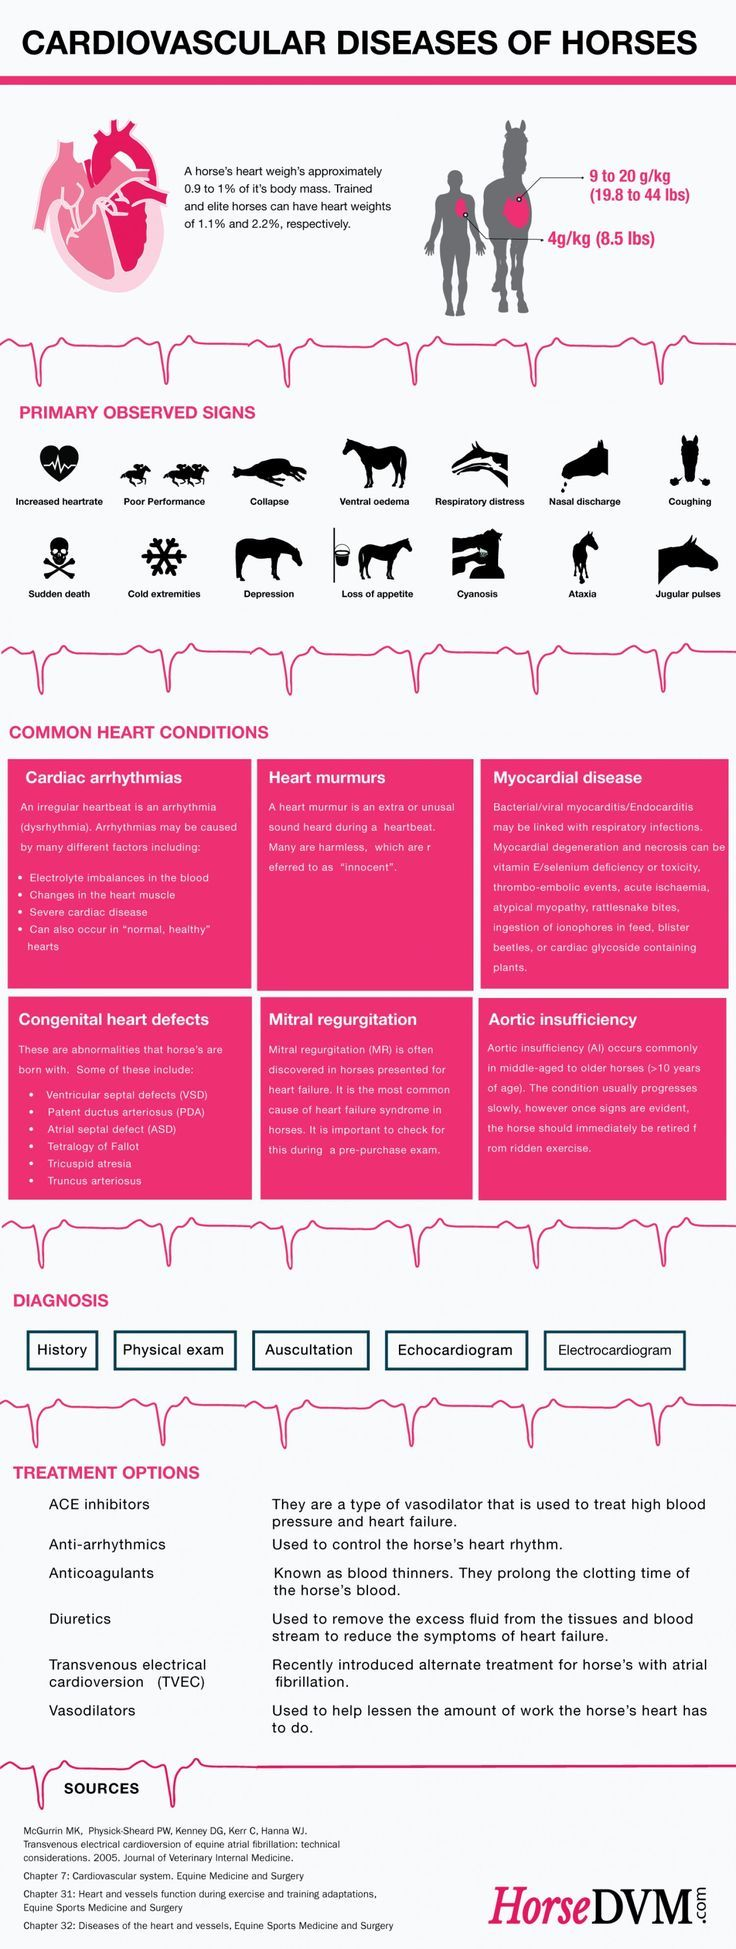 Cardiovascular Diseases of Horses Infographic by HorseDVM.